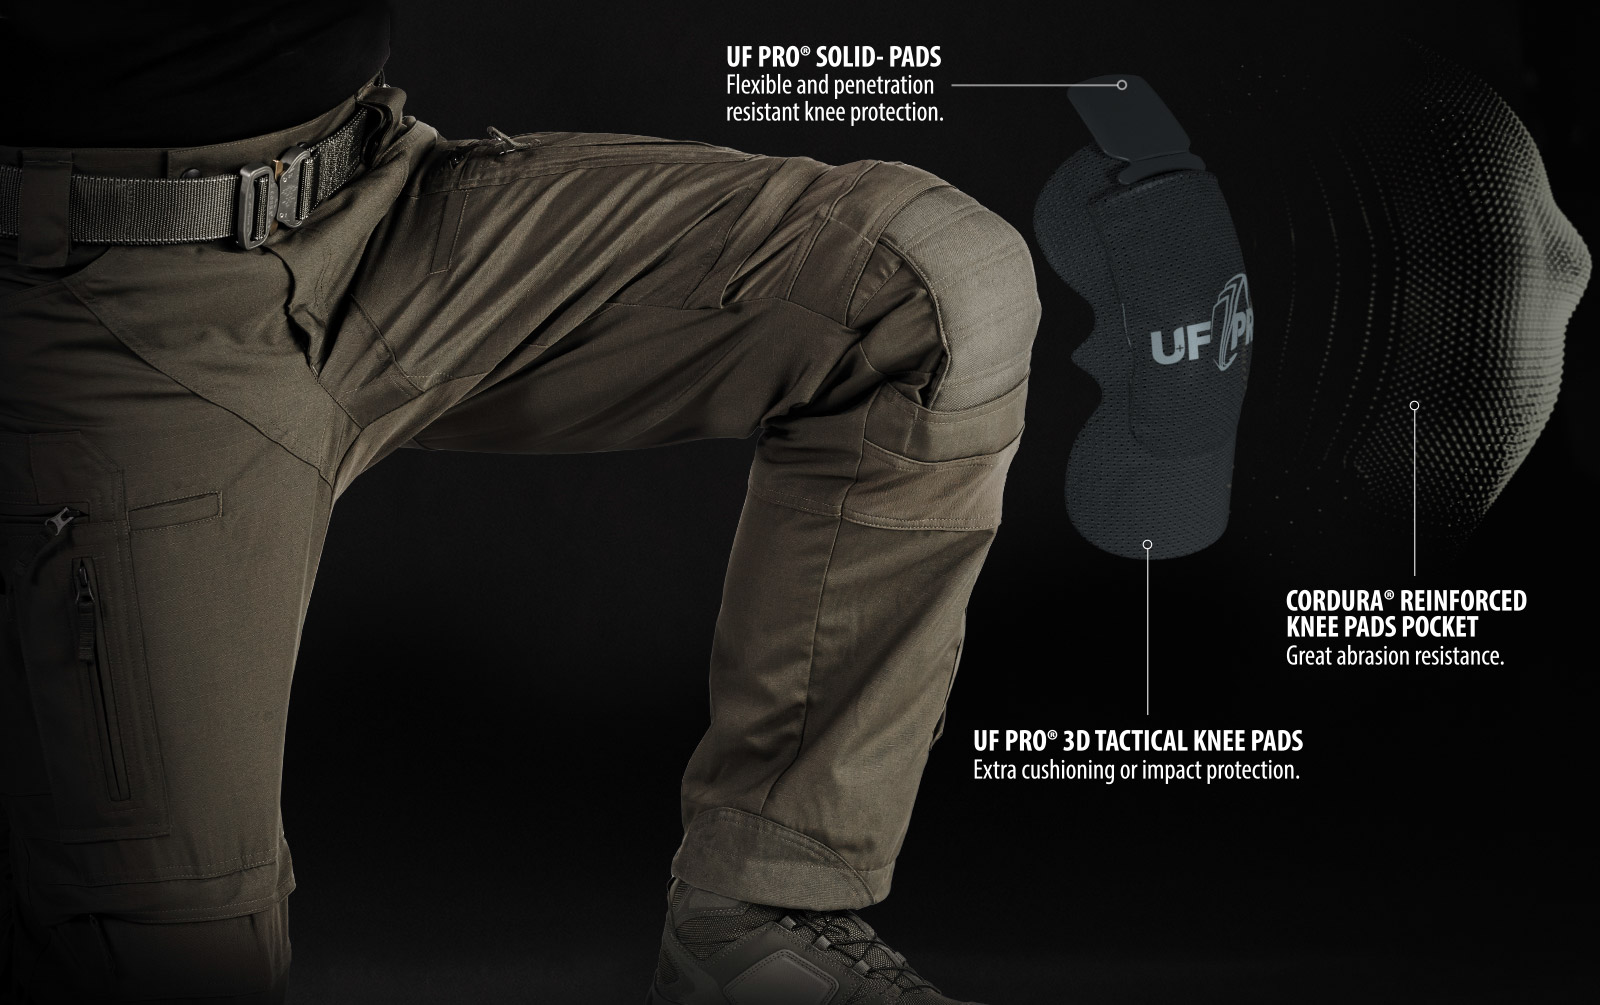 Tactical pants with knee protection | The story behind the design